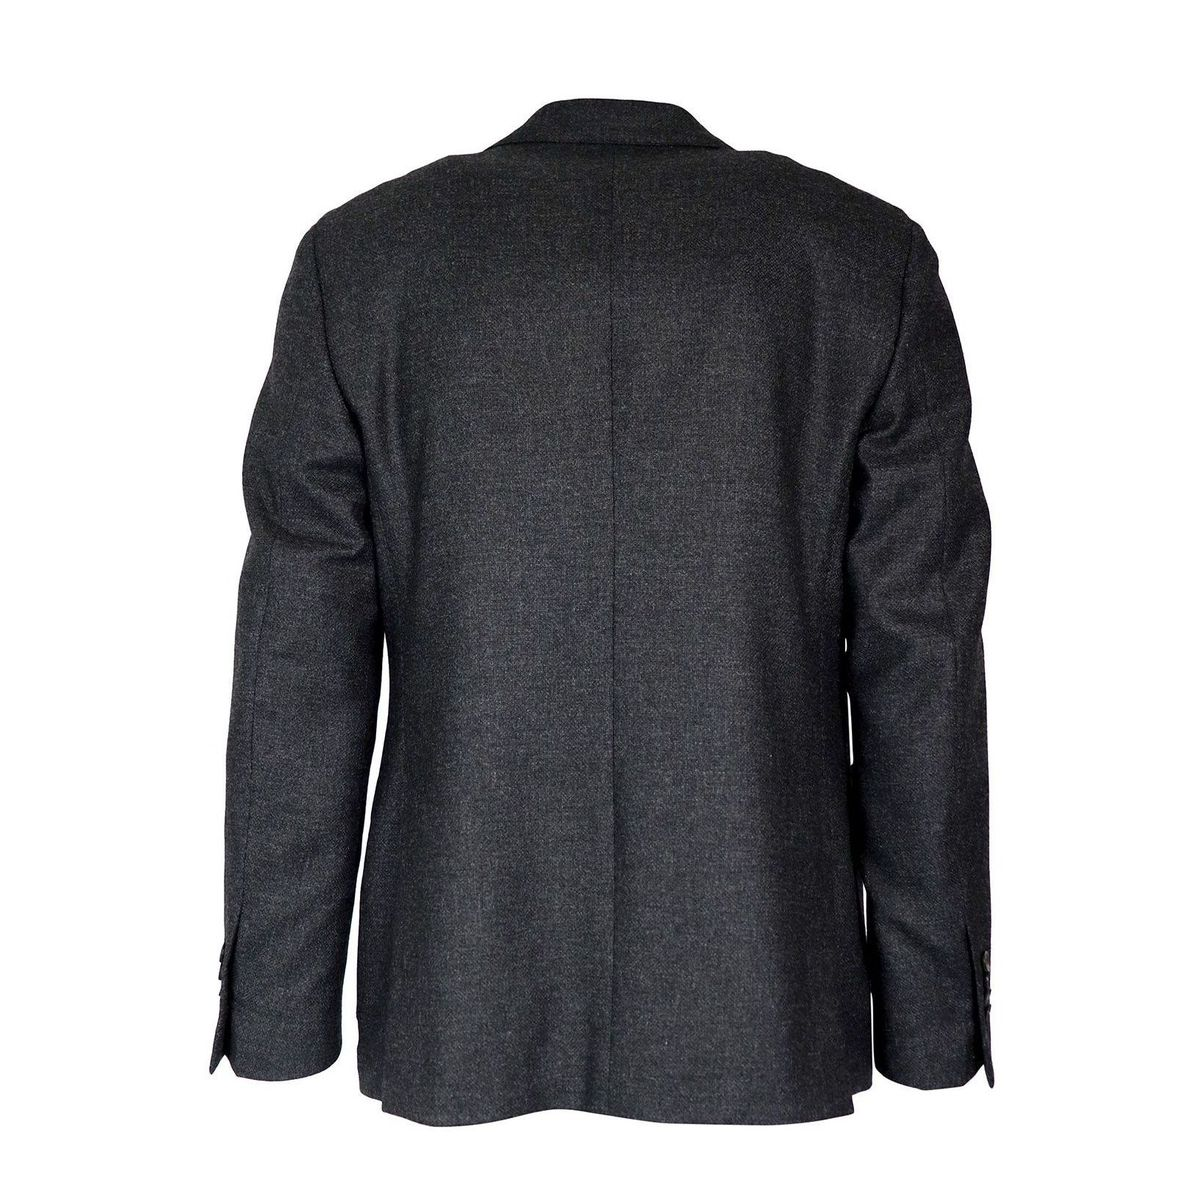 Semi-lined wool jacket SPECIAL LINE Anthracite Lardini